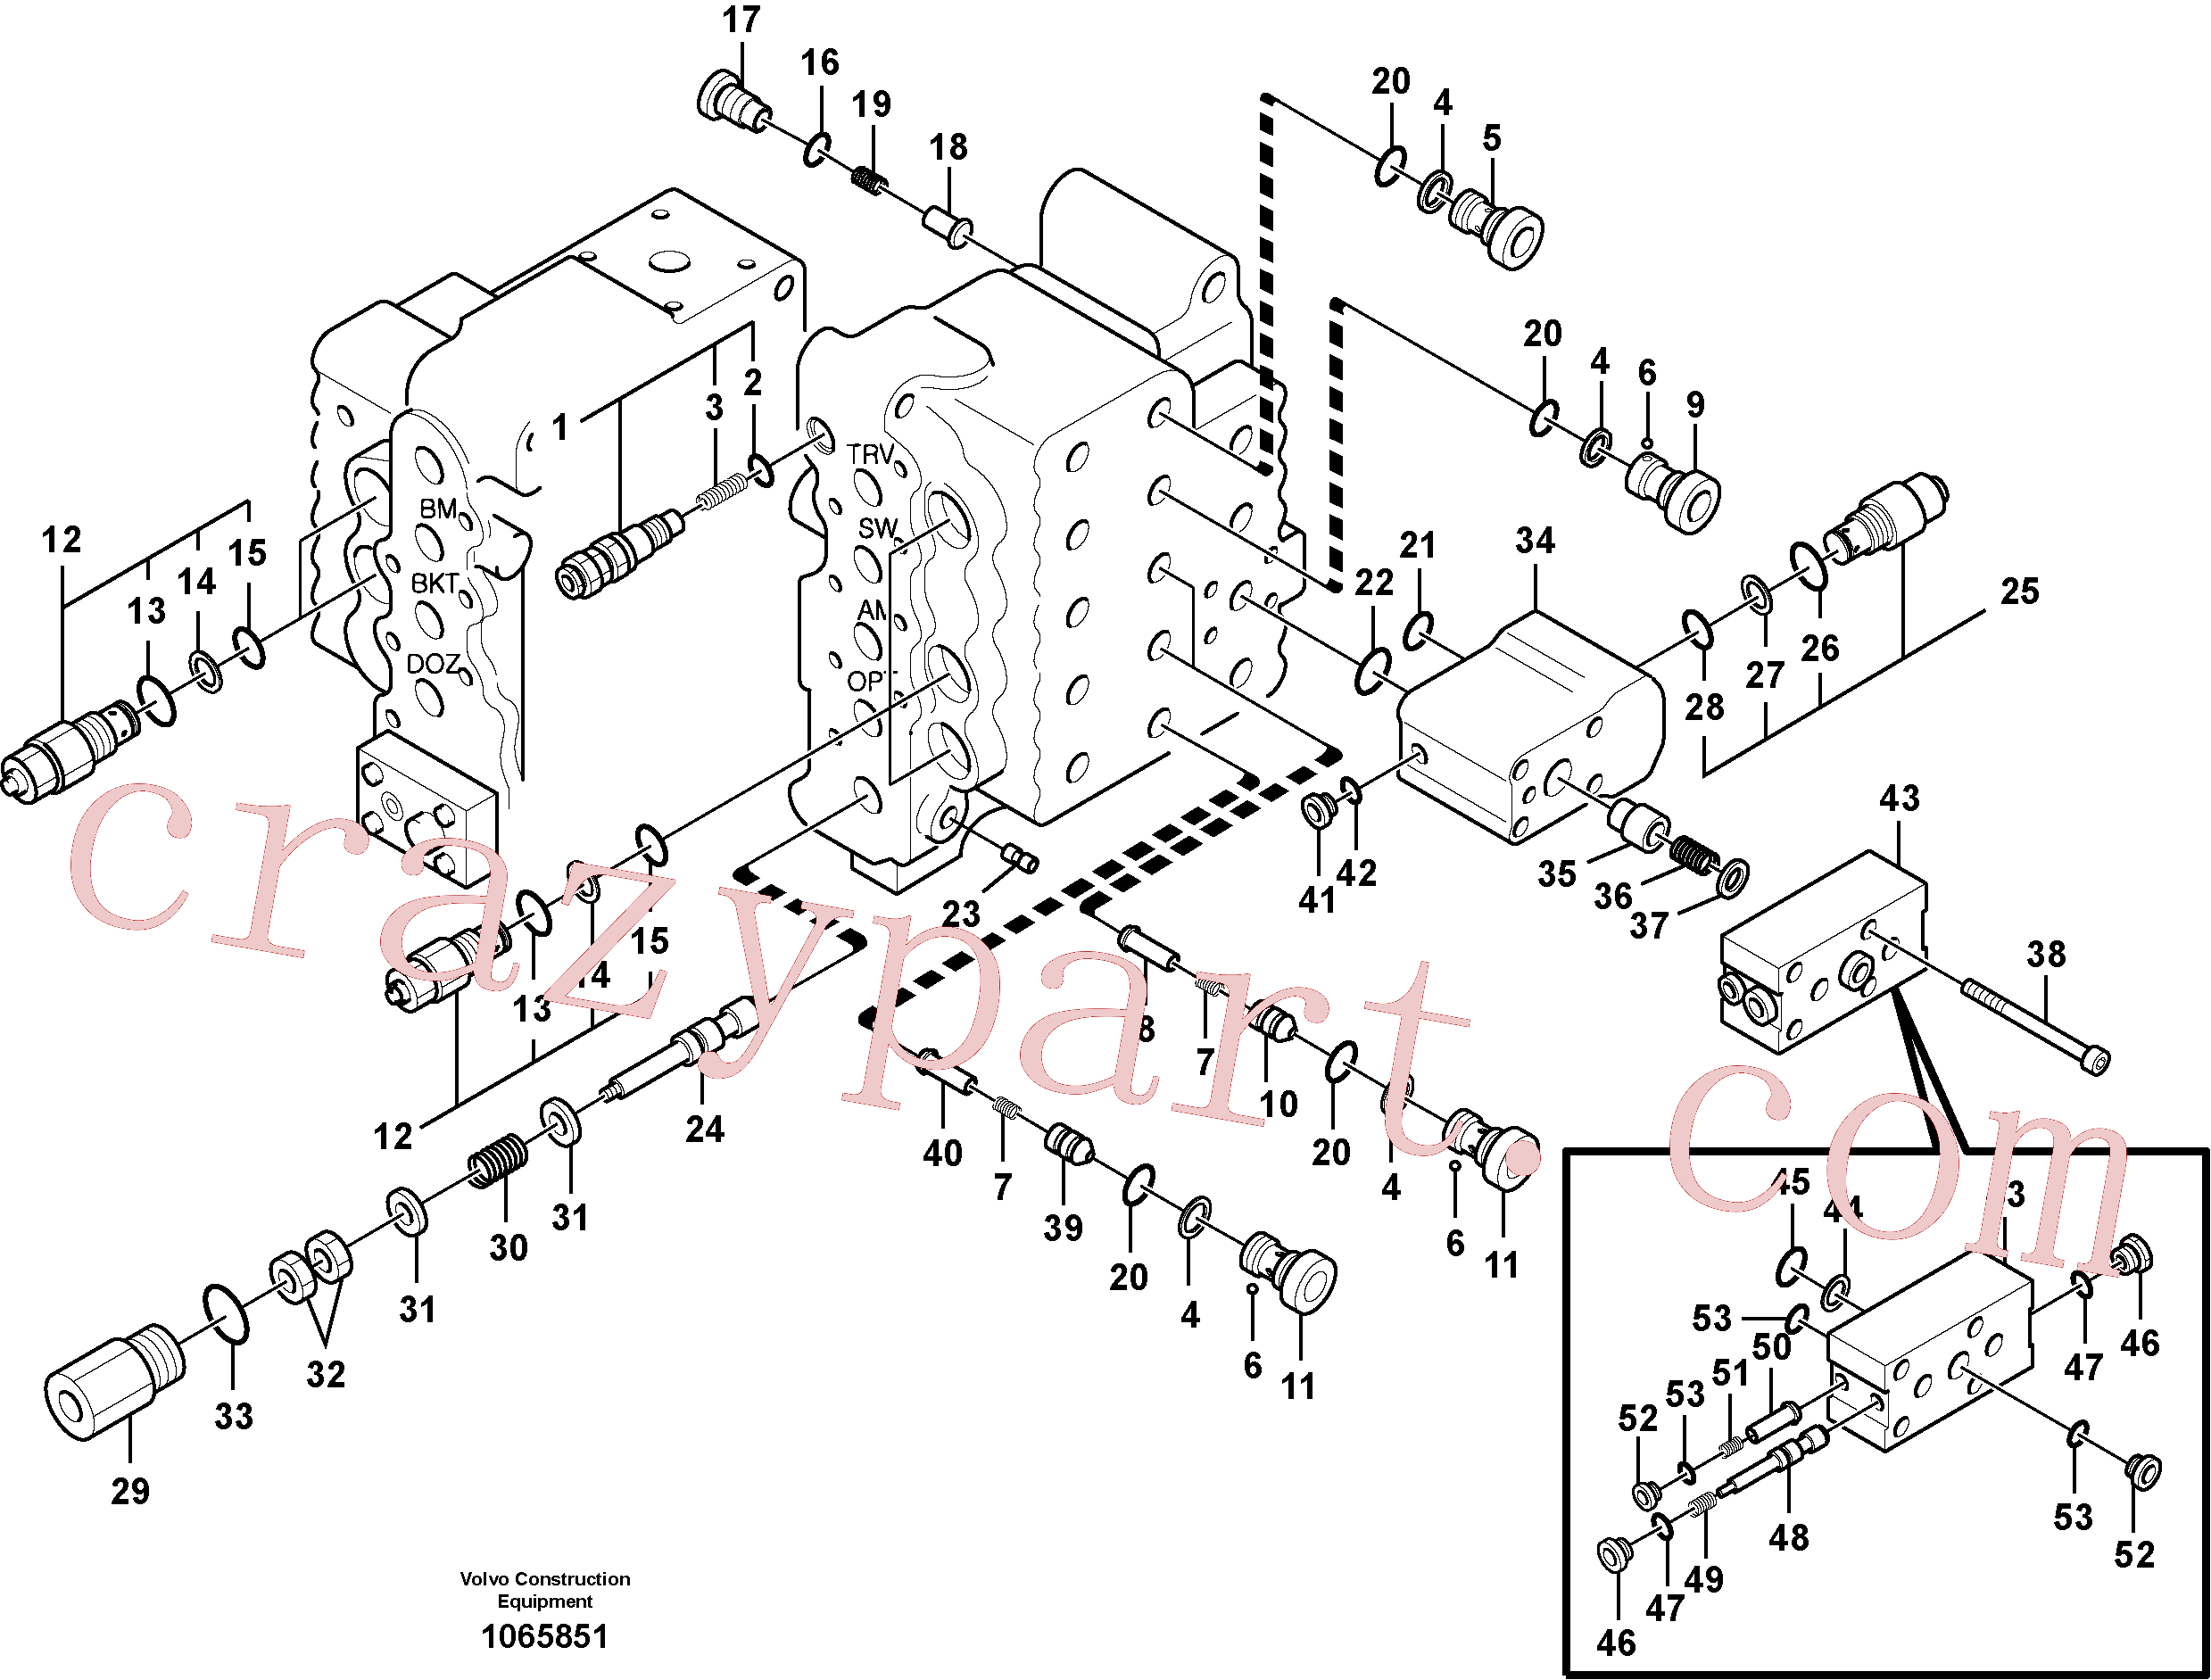 SA8230-13140 for Volvo Main control valve, relief valve and dipper arm holding(1065851 assembly)